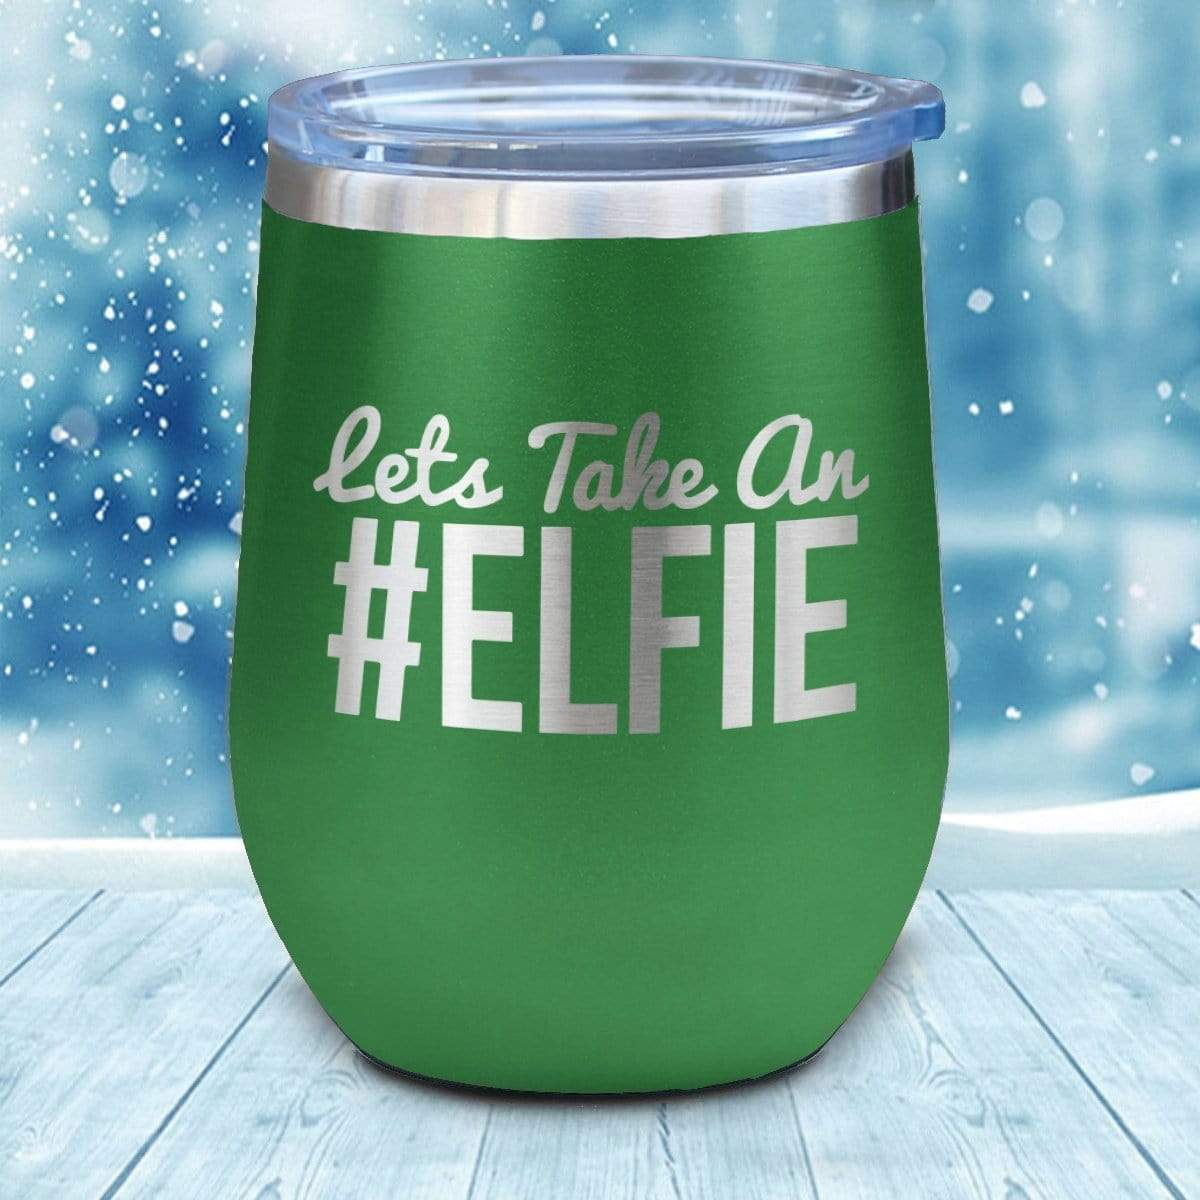 Tumbler - #Elfie Christmas Wine Glass